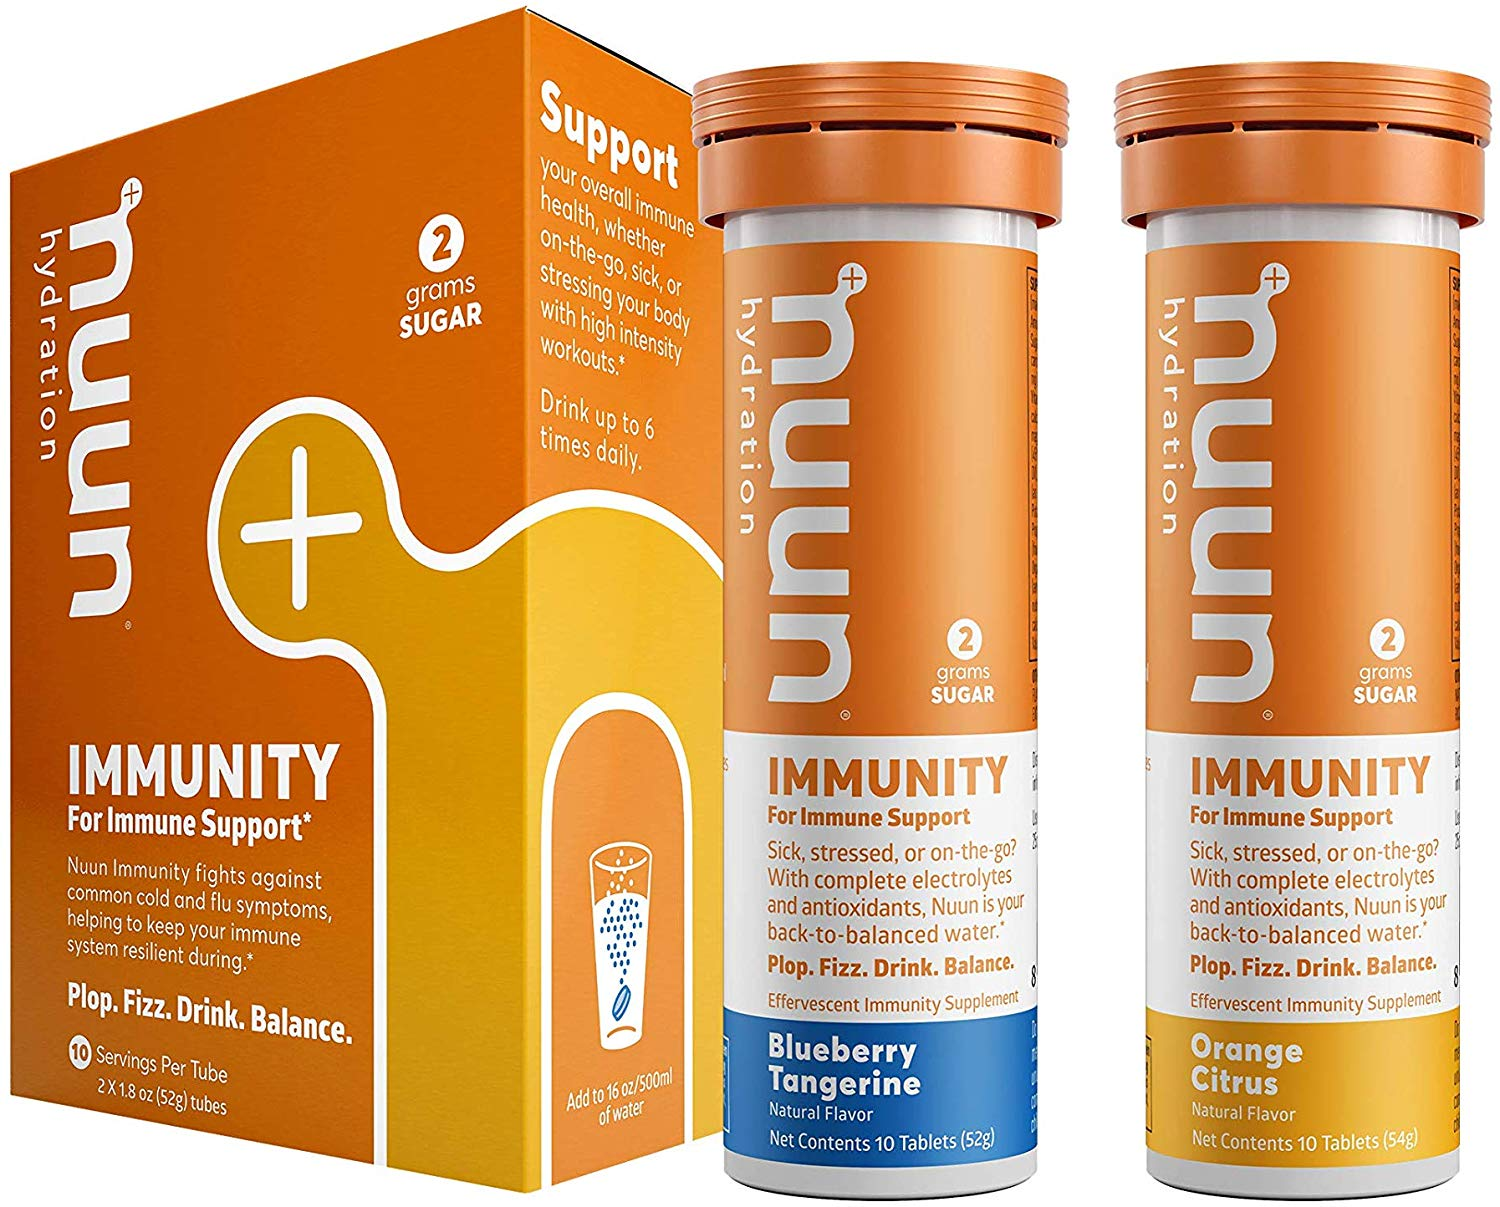 Nuun Immunity: Antioxidant Immune Support Hydration Supplement with Vitamin C, Zinc, Turmeric, Elderberry, Ginger, Echinacea, and Electrolytes